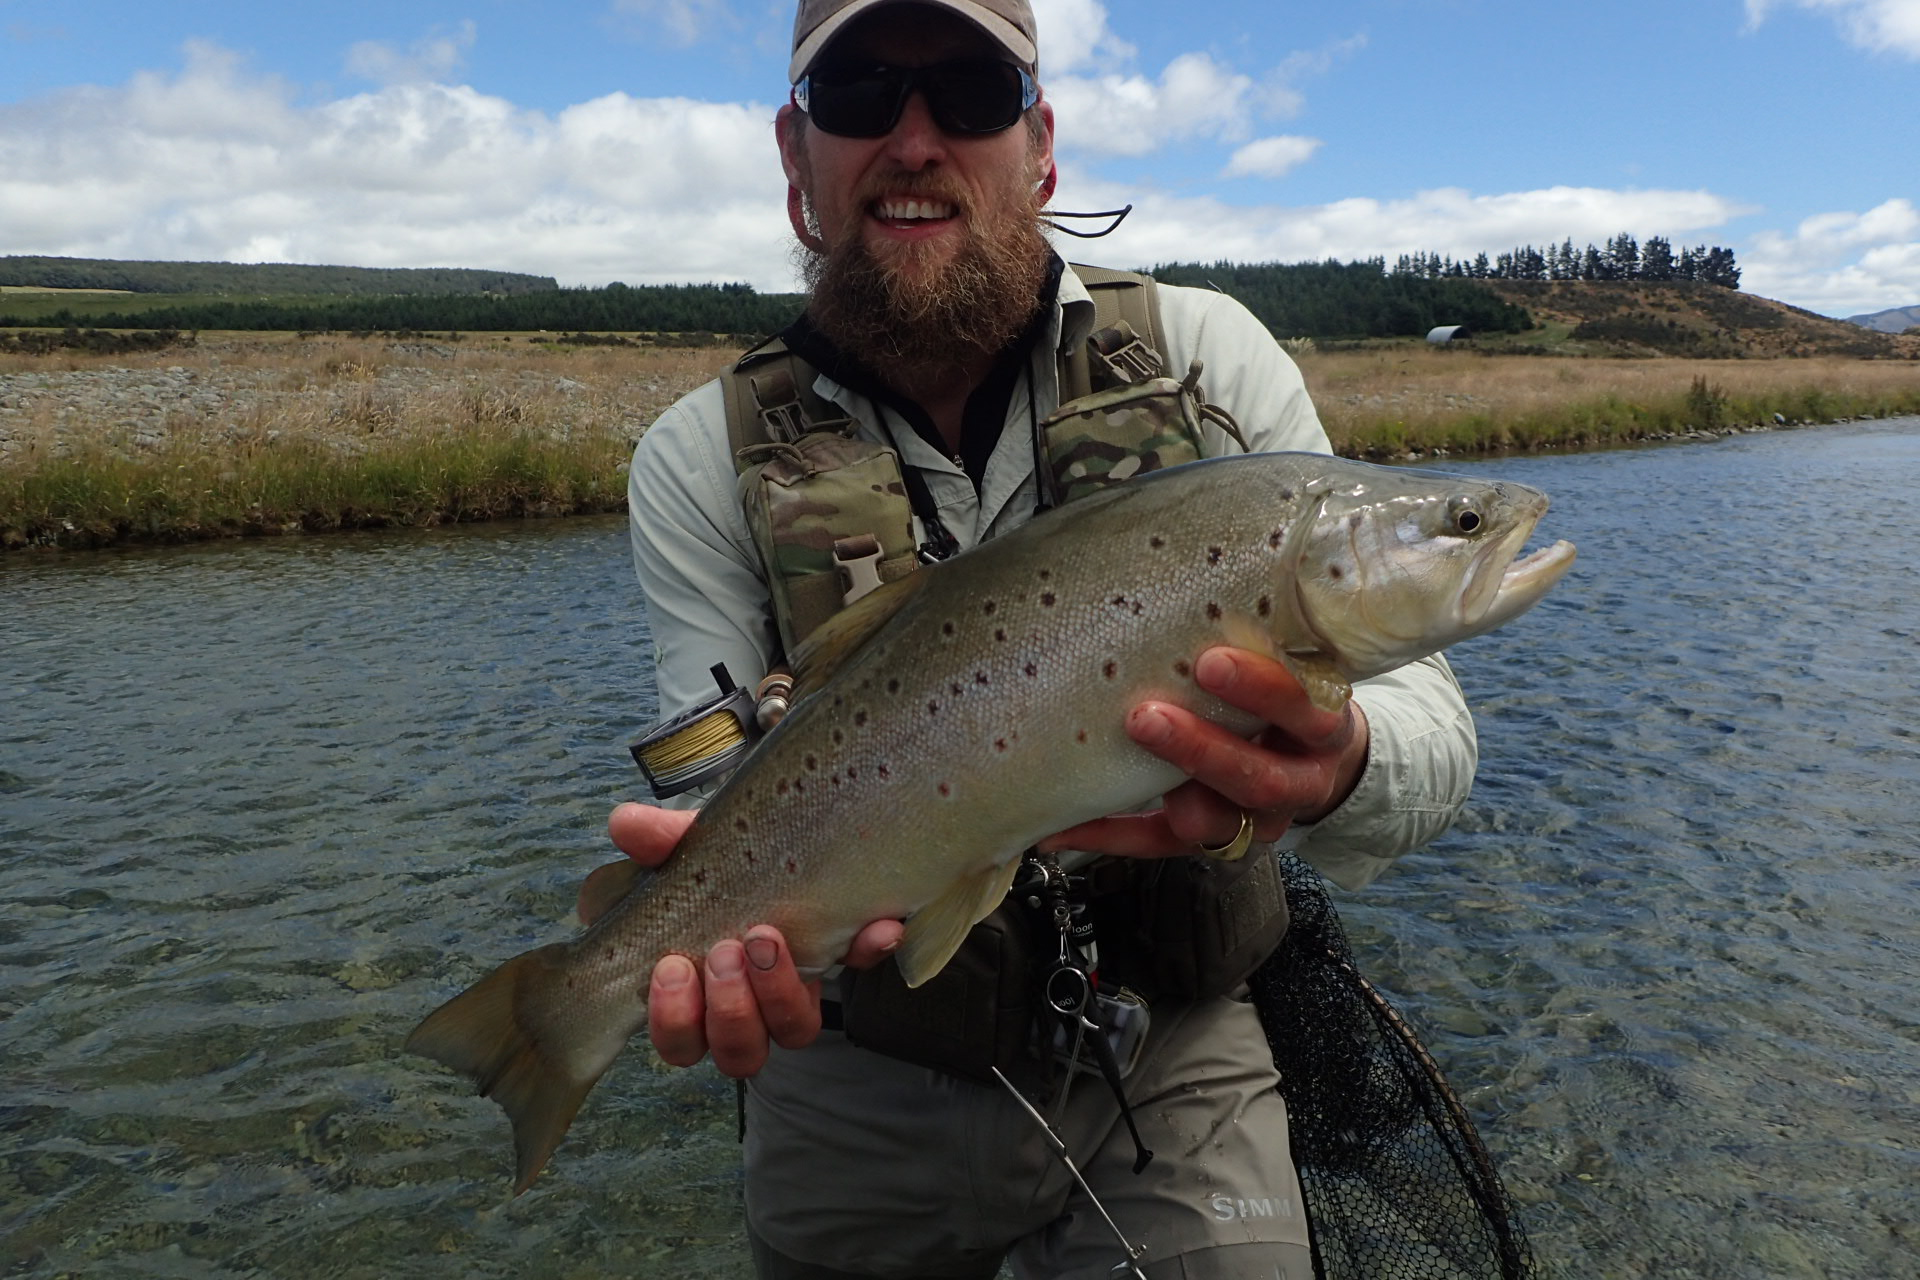 Photos from Week 1 of our 2019 Fly Fishing Trips